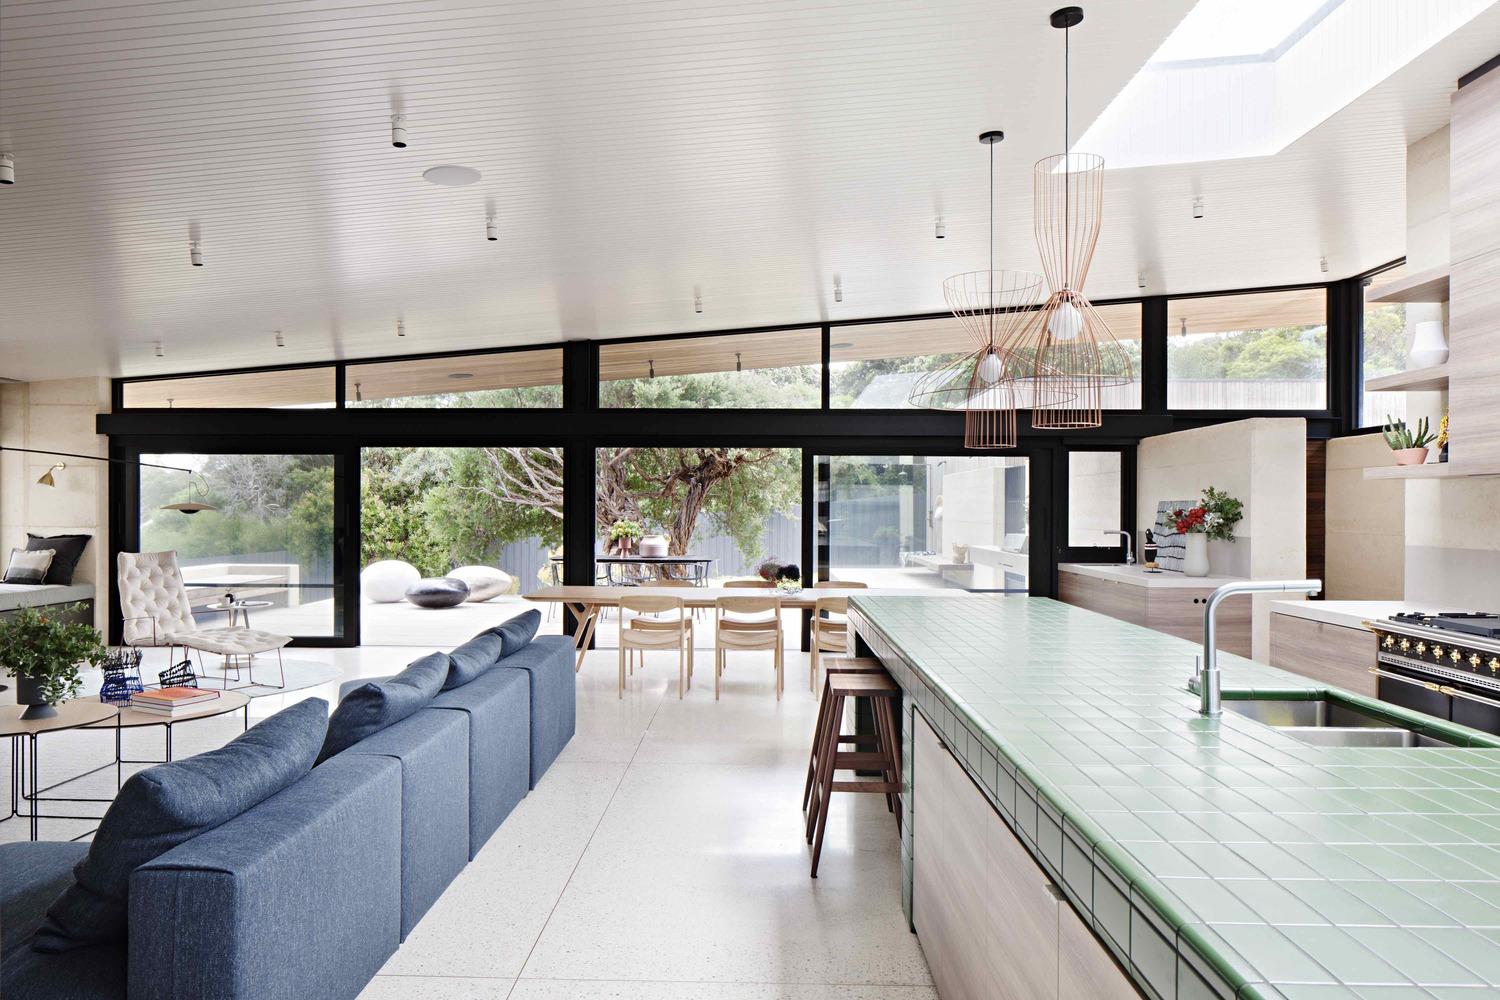 9_Layer House_Robson Rak Architects and Interior Designers_Inspirationist